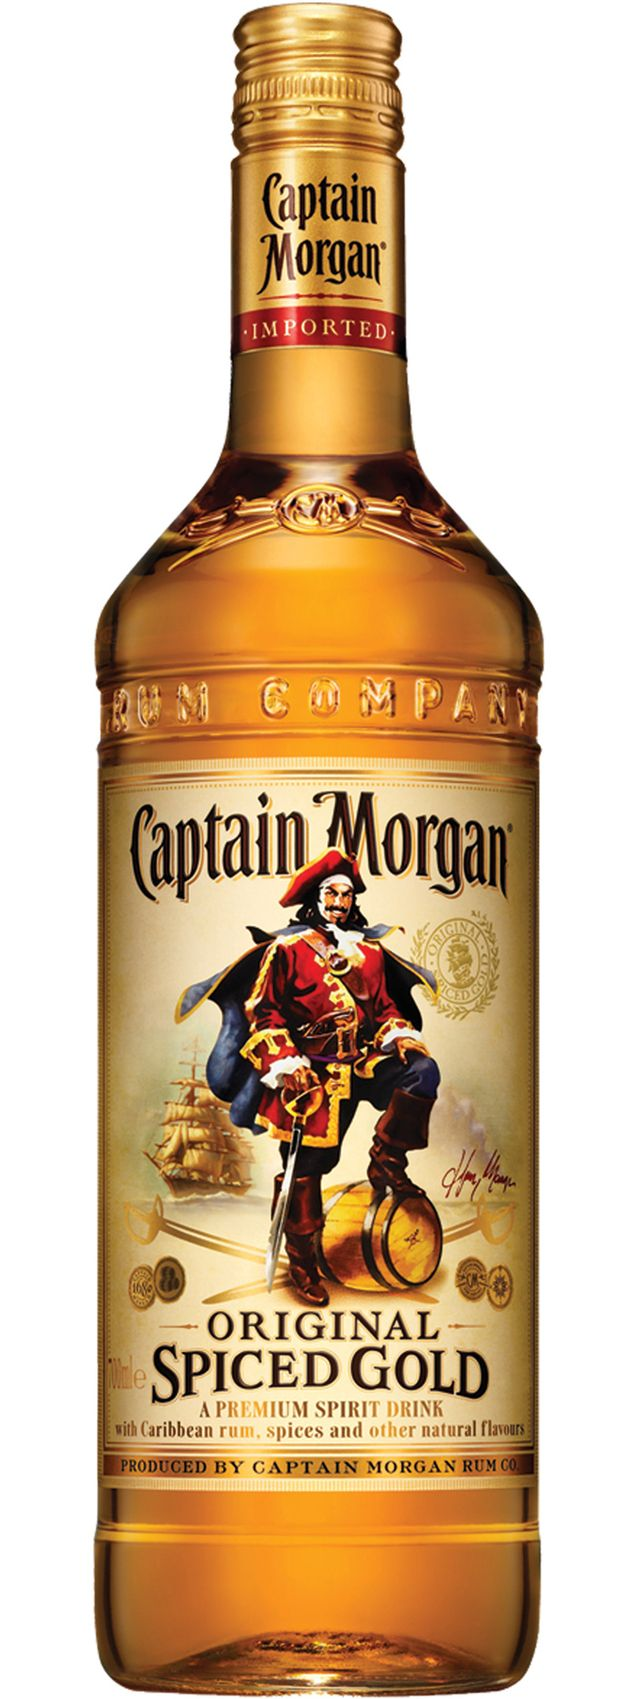 Drinks To Make With Captain Morgan Silver Spiced Rum